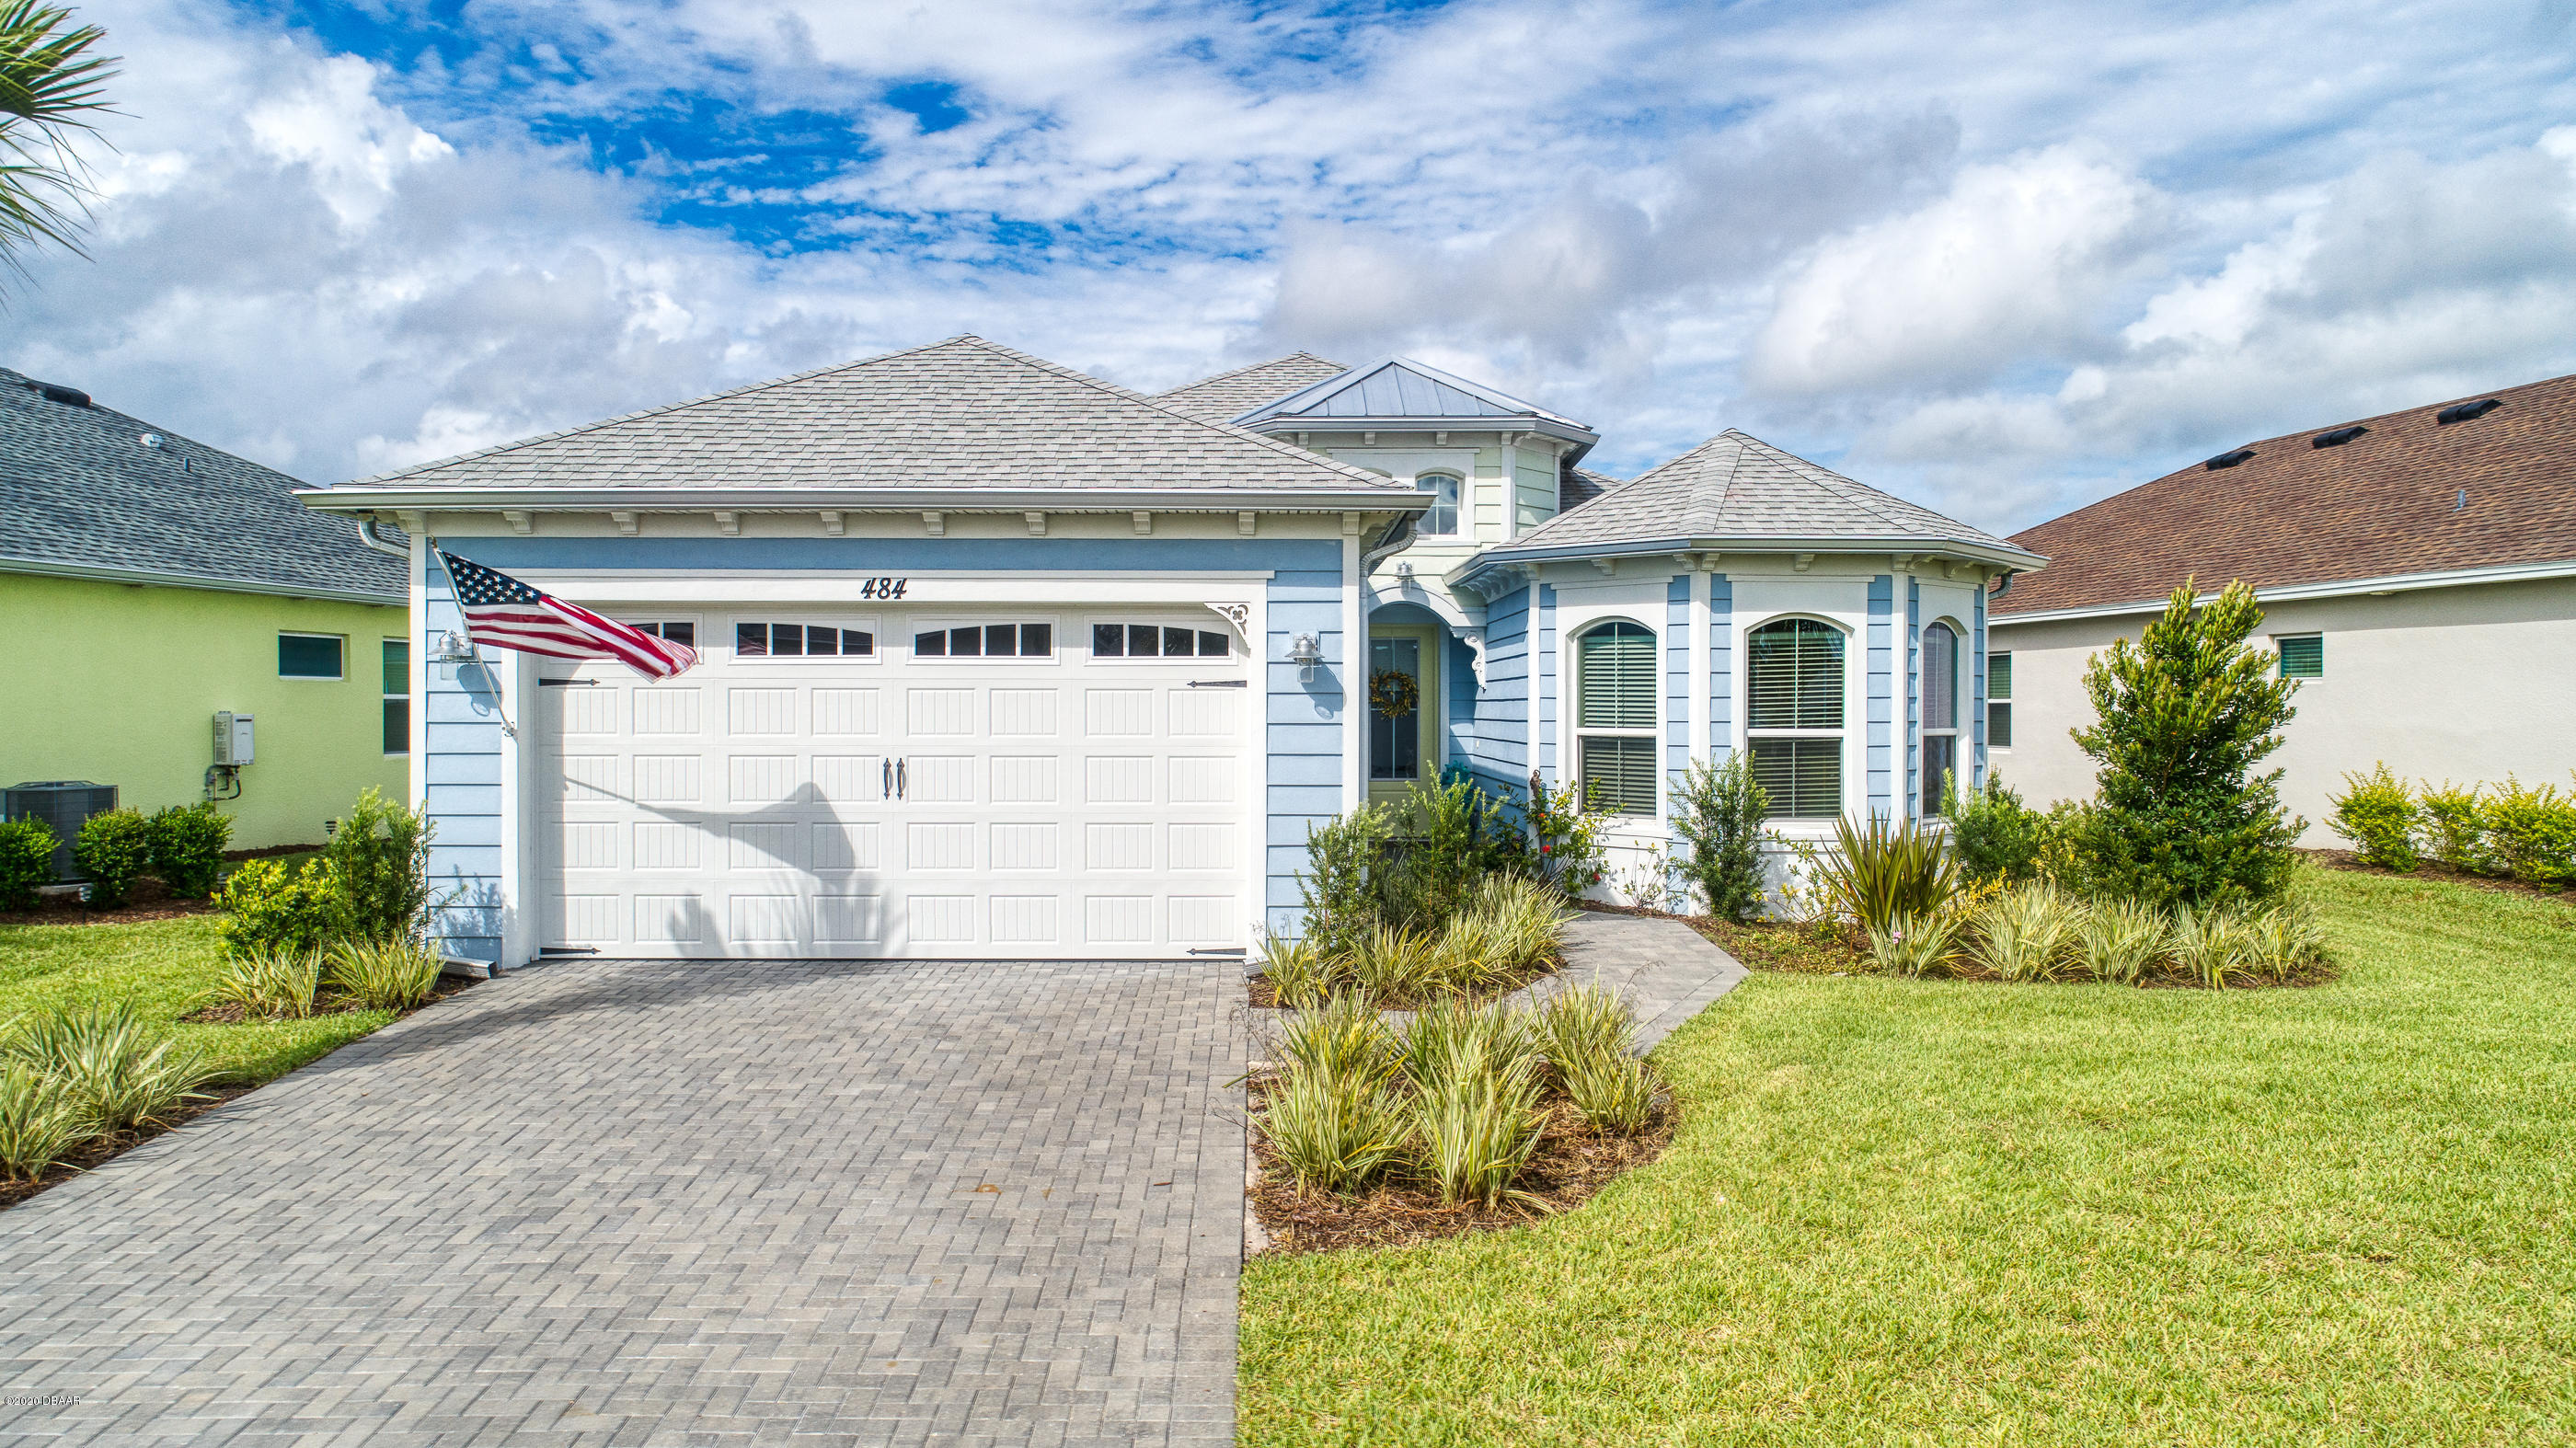 Photo of 484 Coral Reef Way, Daytona Beach, FL 32124